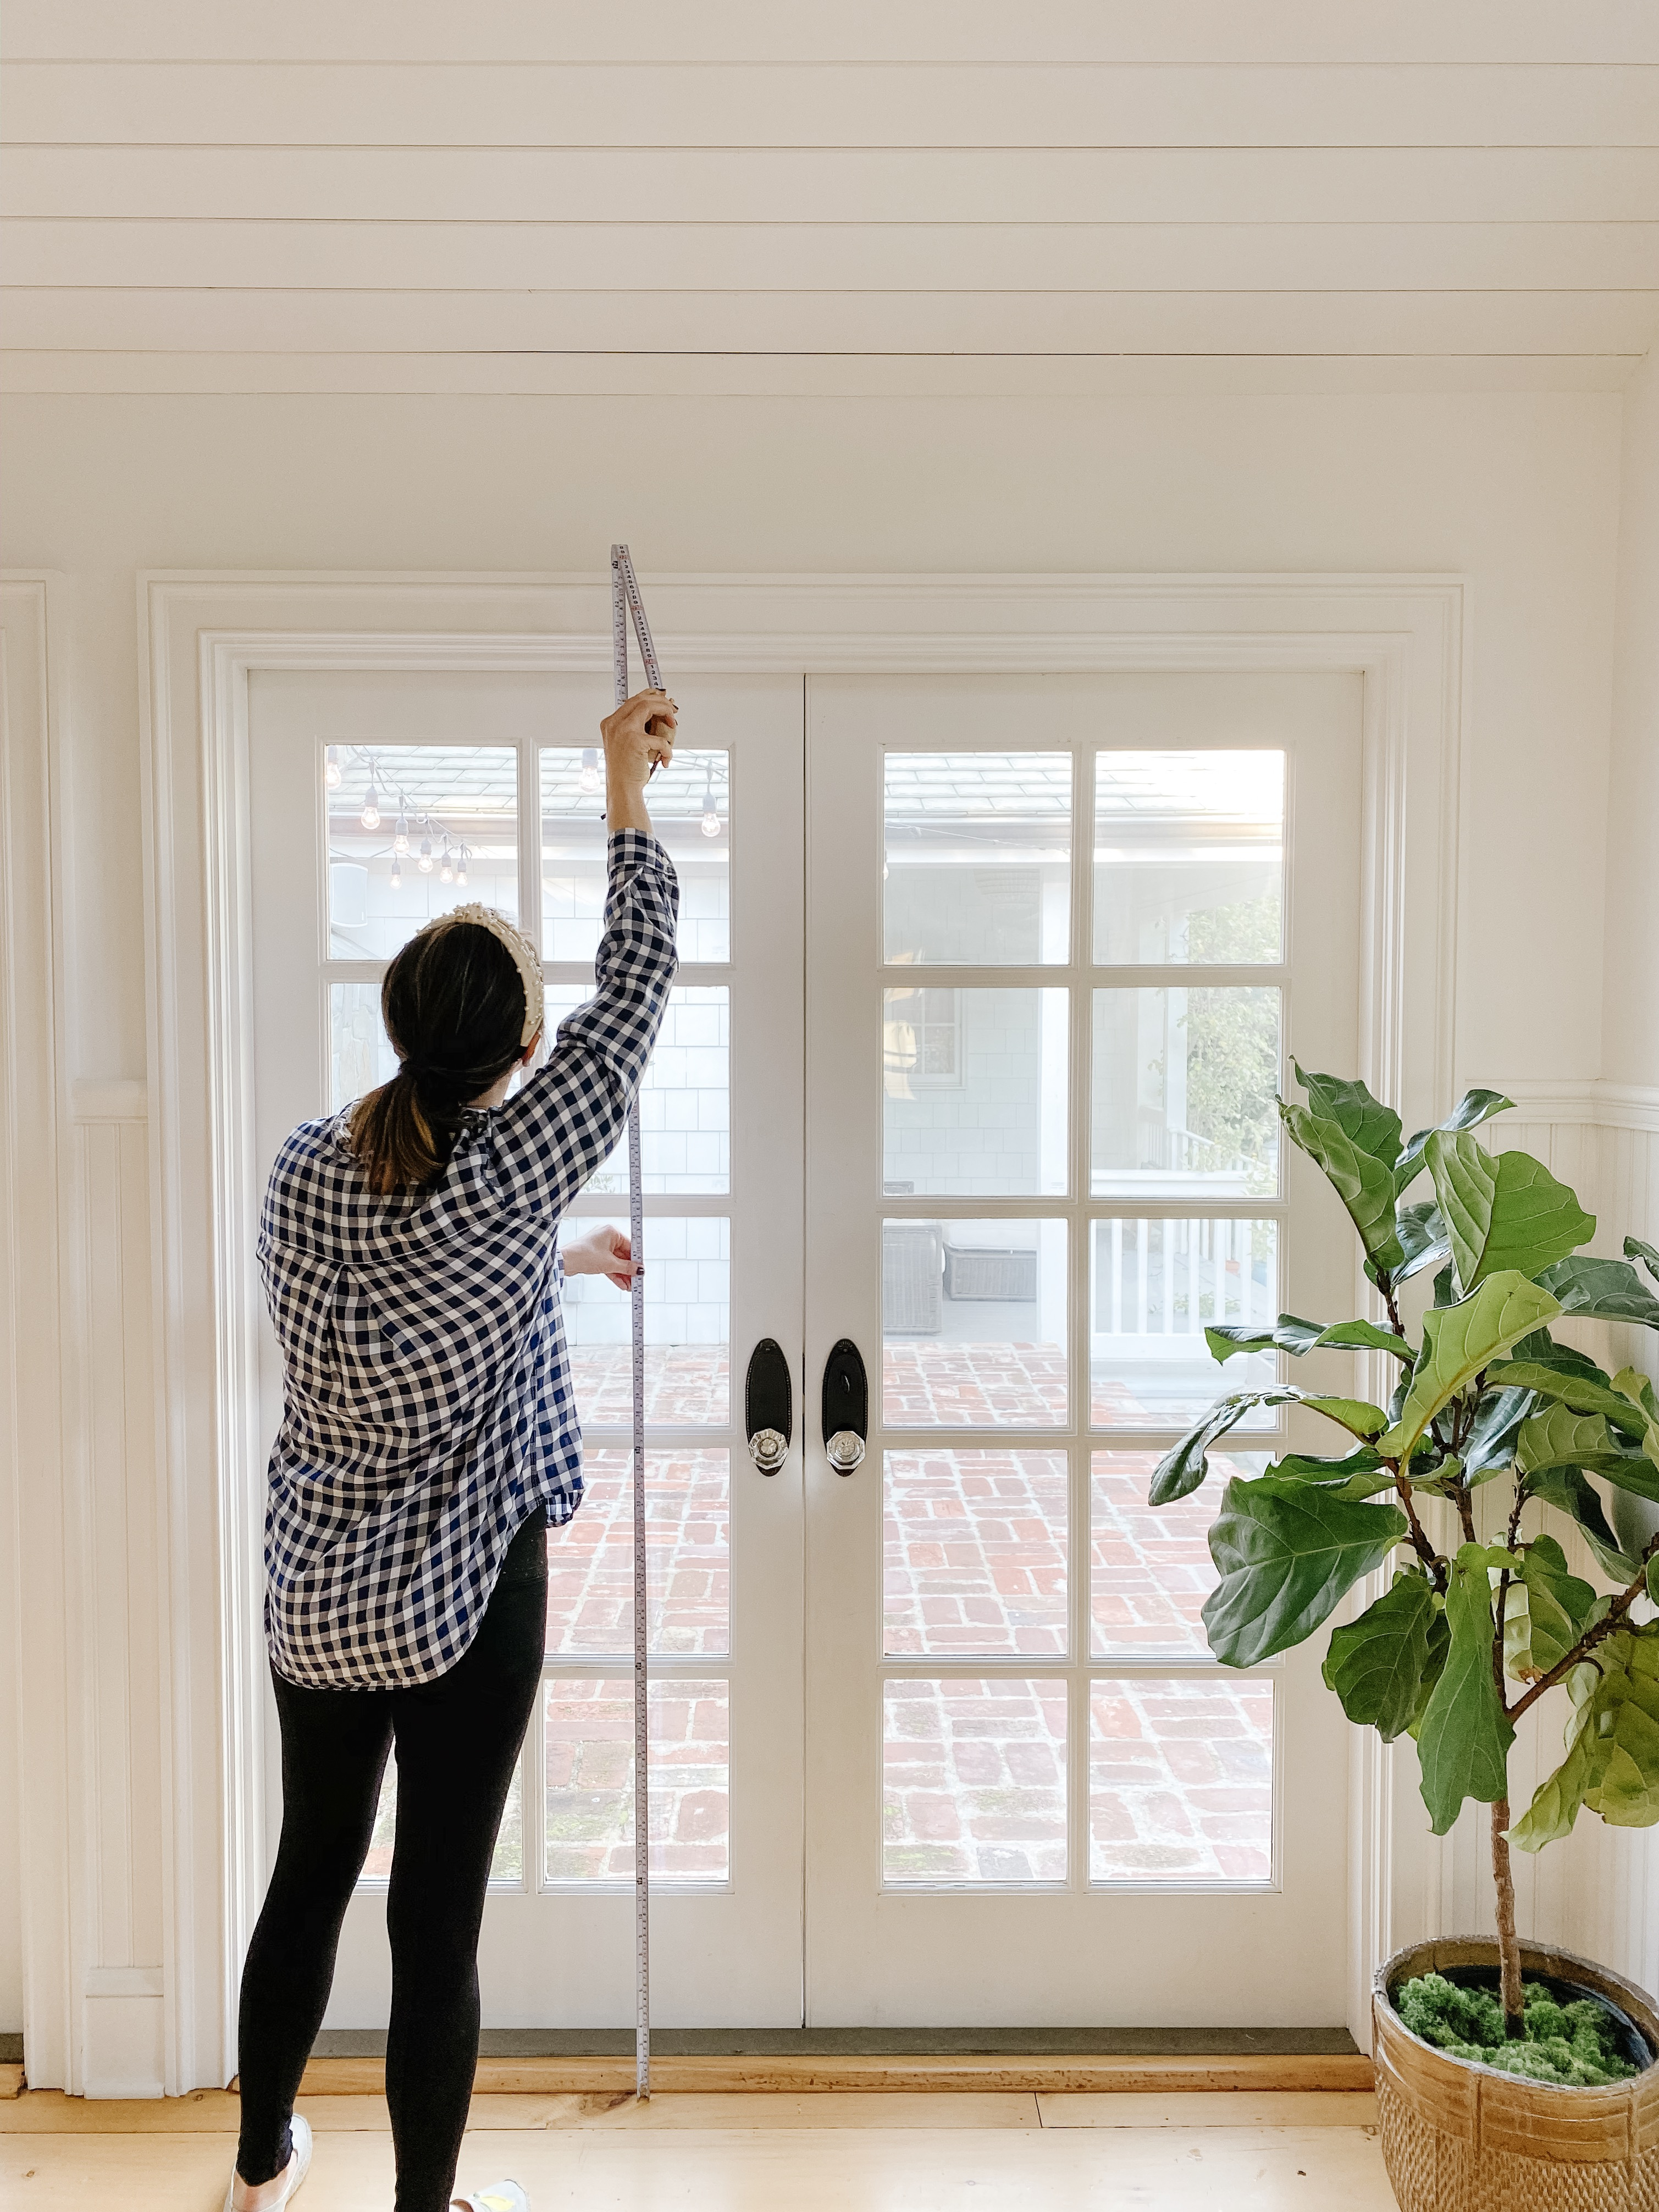 Everhem design professional demonstrates how to measure windows height for drapery